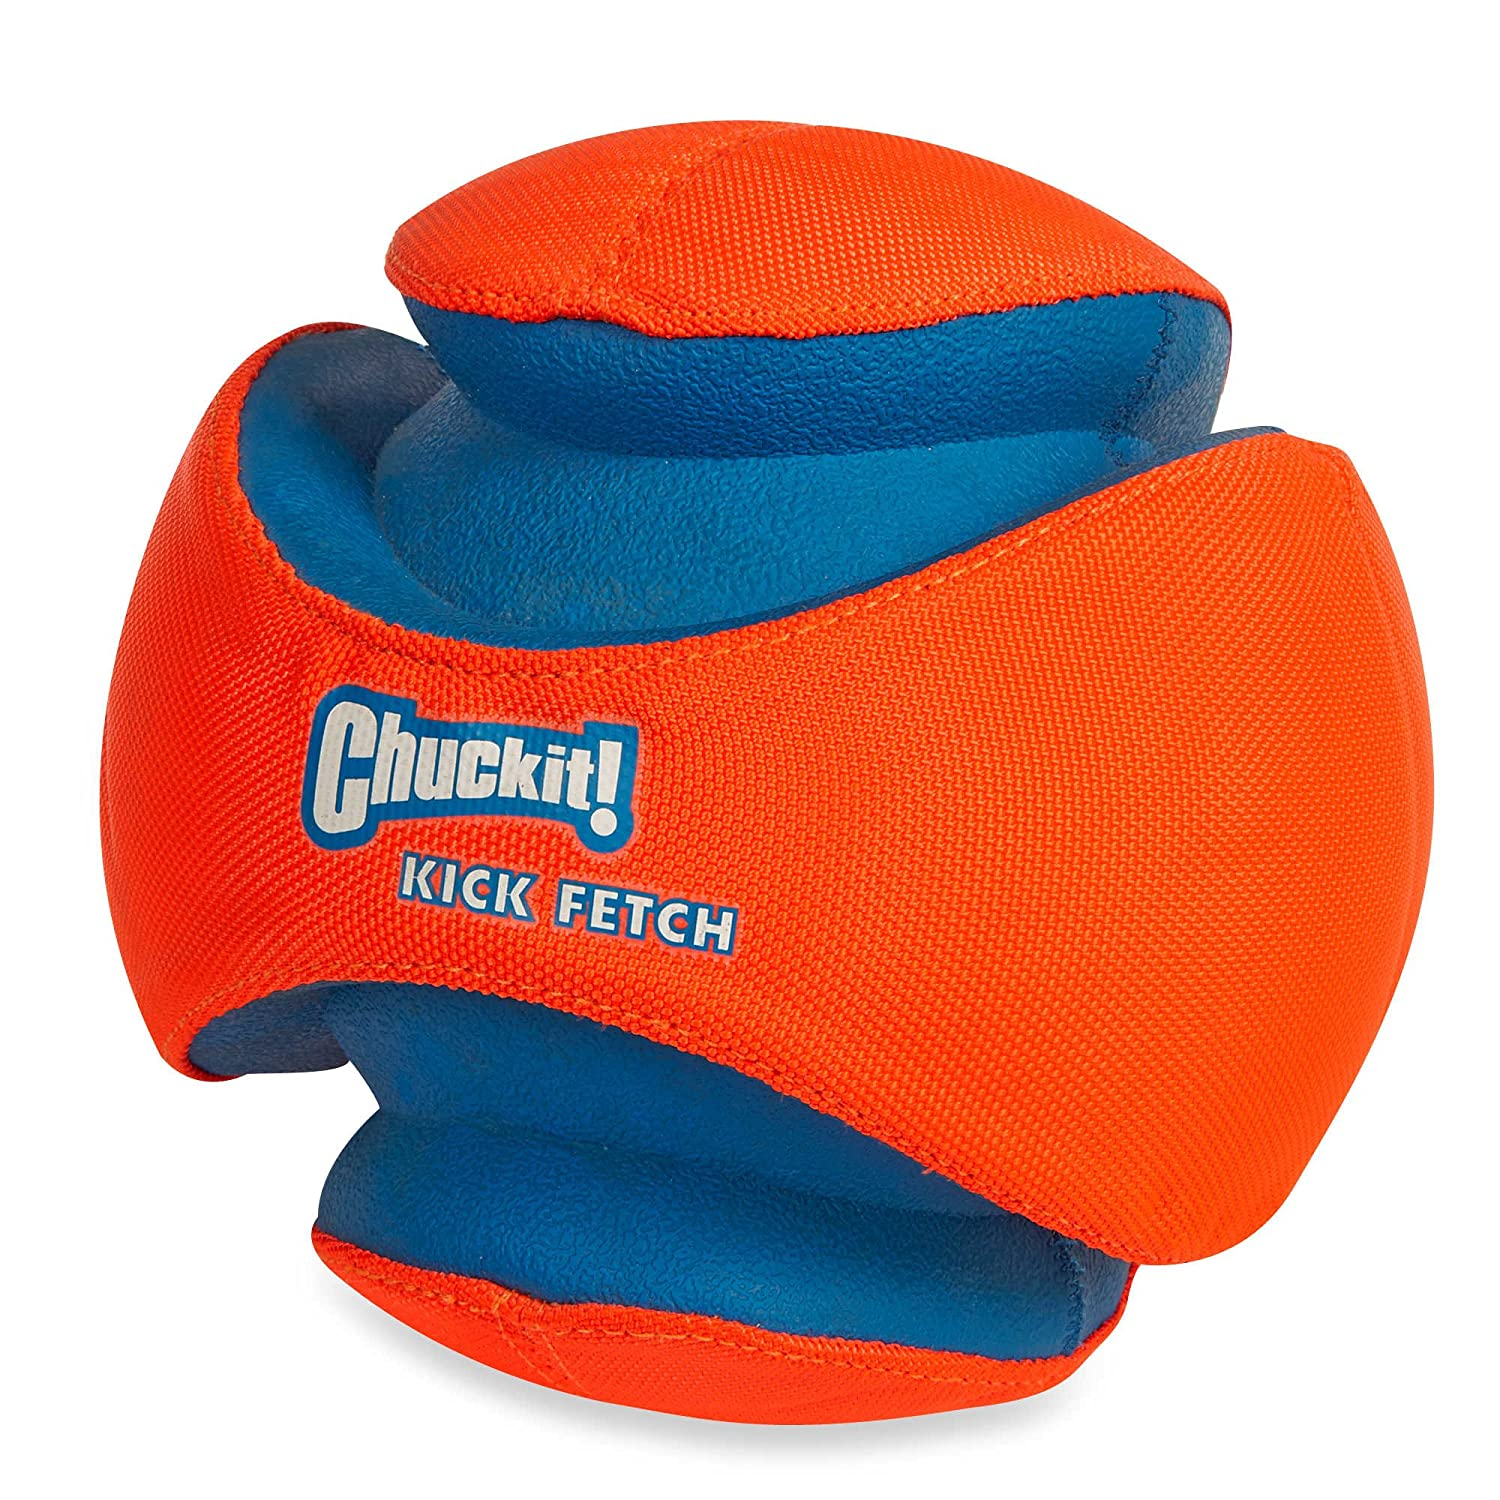 Chuckit ® Large Kick FetchTM Ball